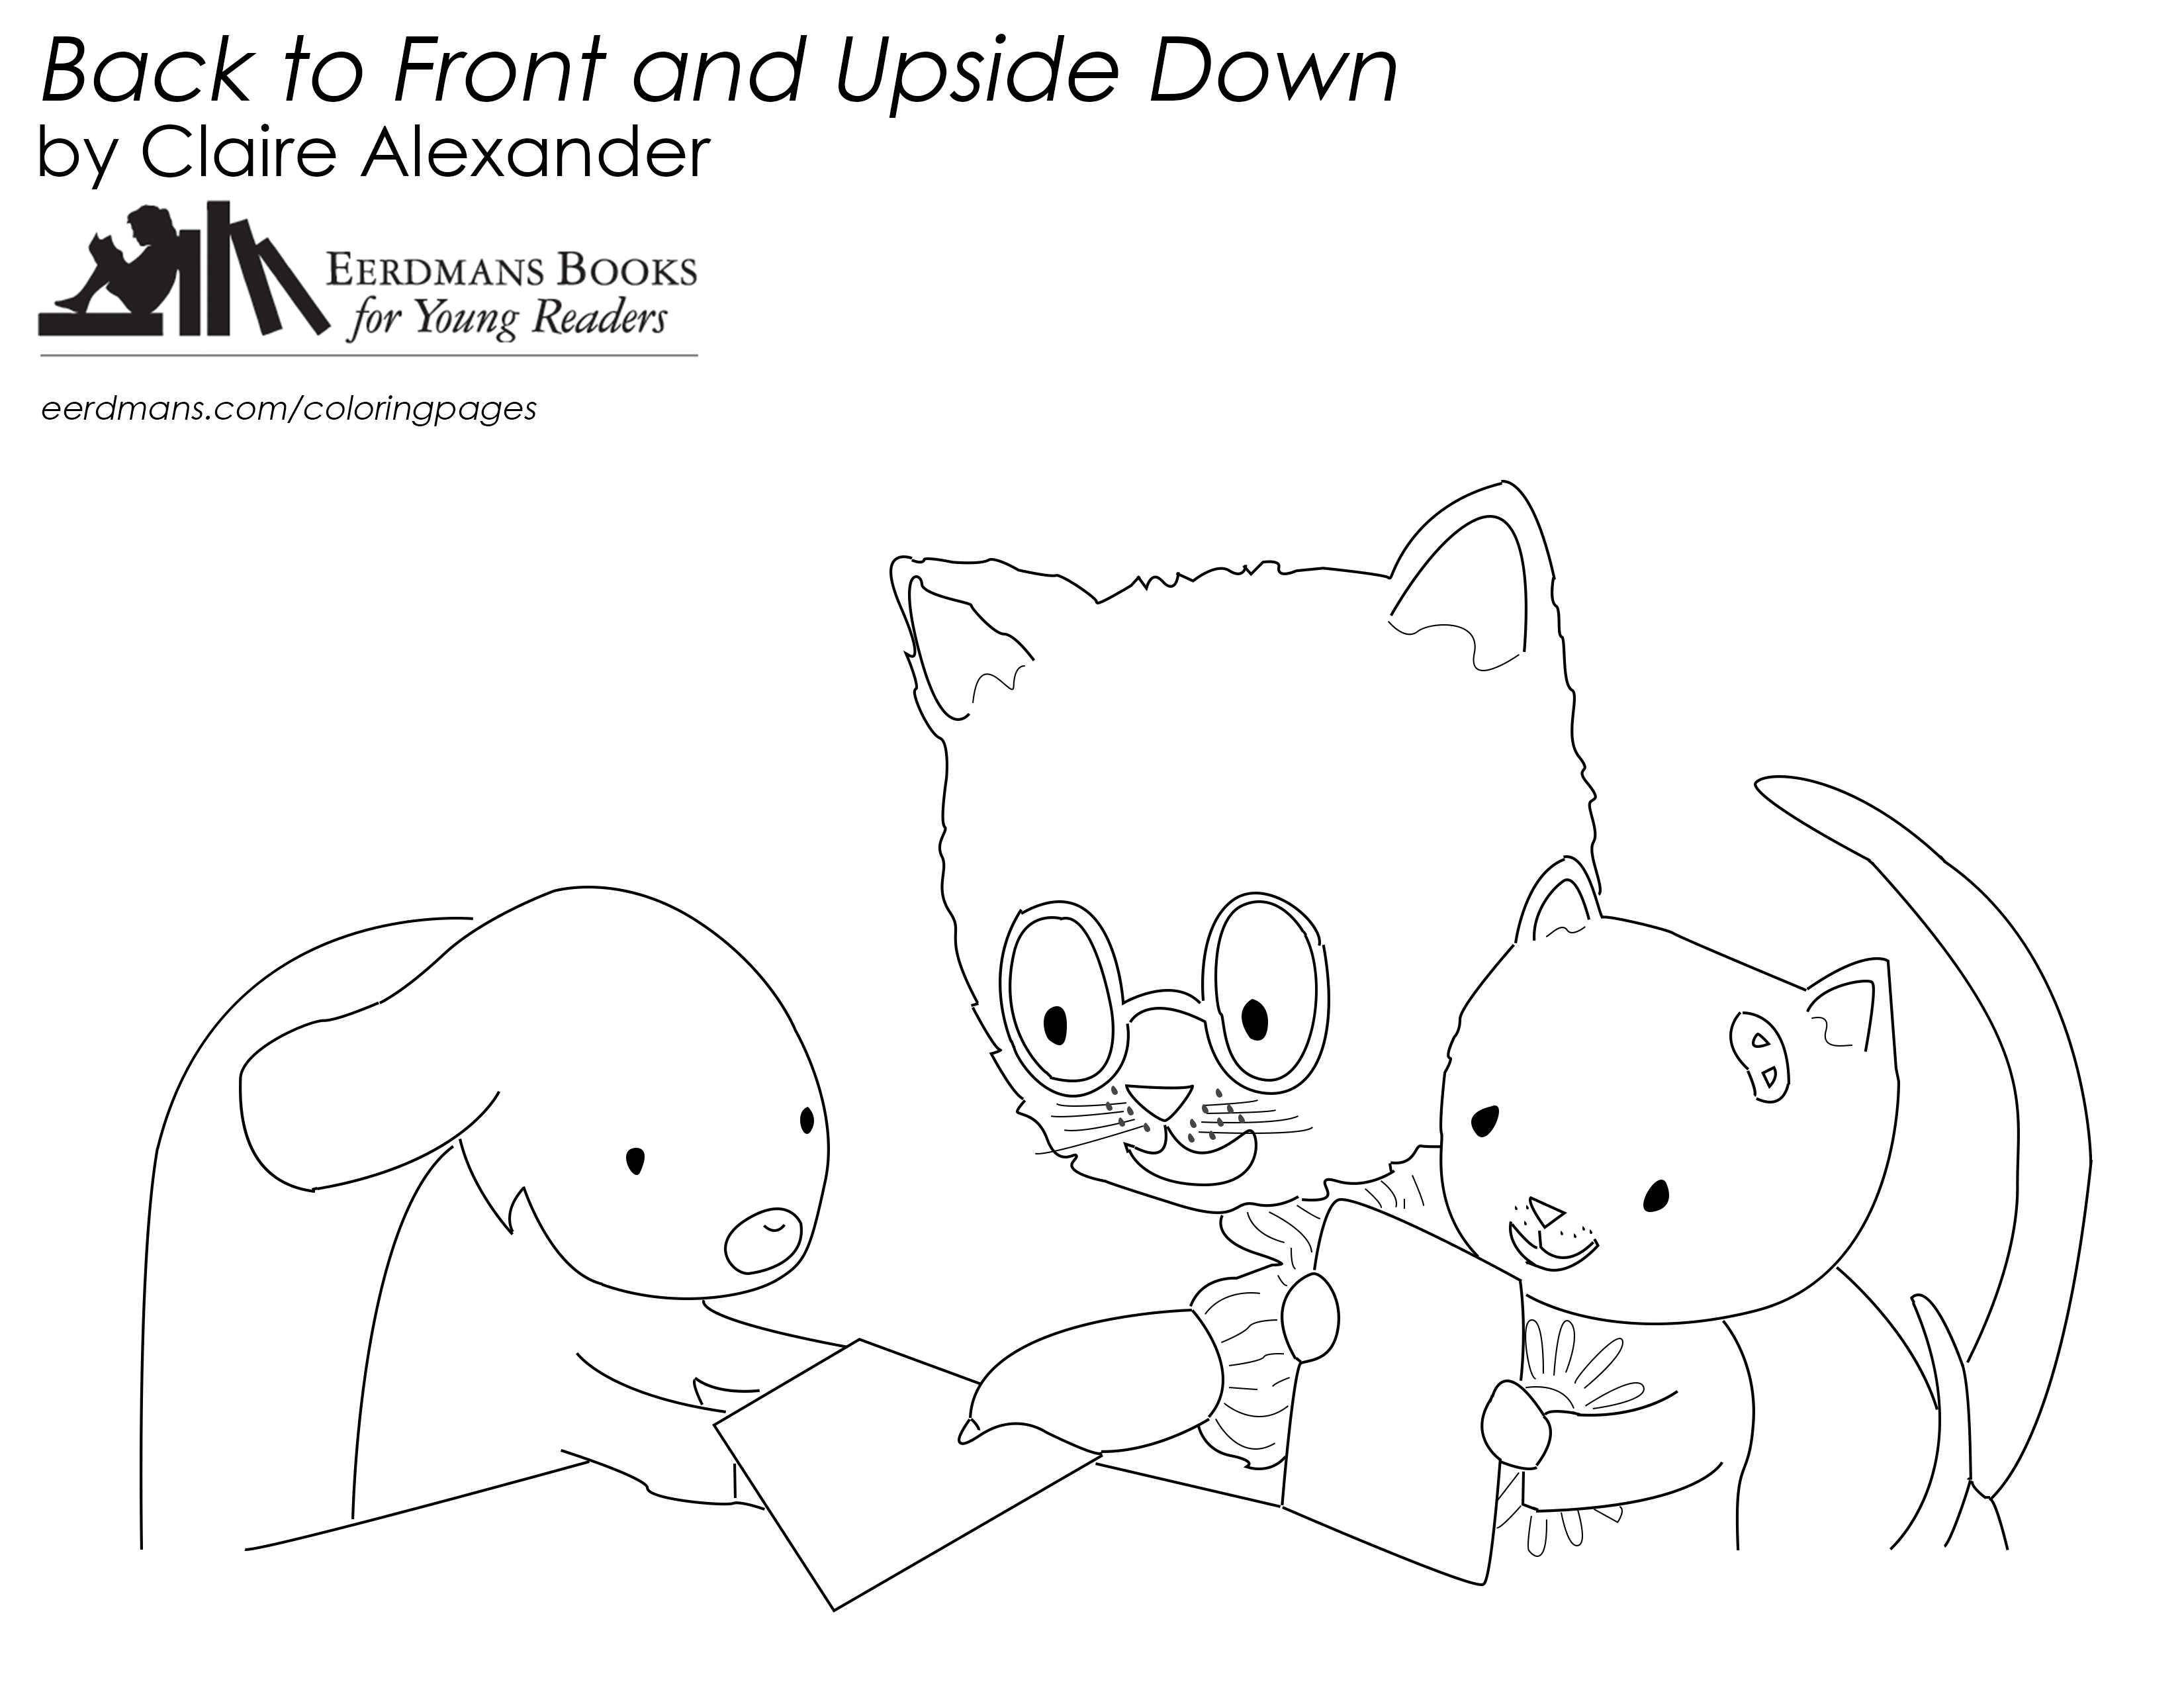 Back to Front coloring page